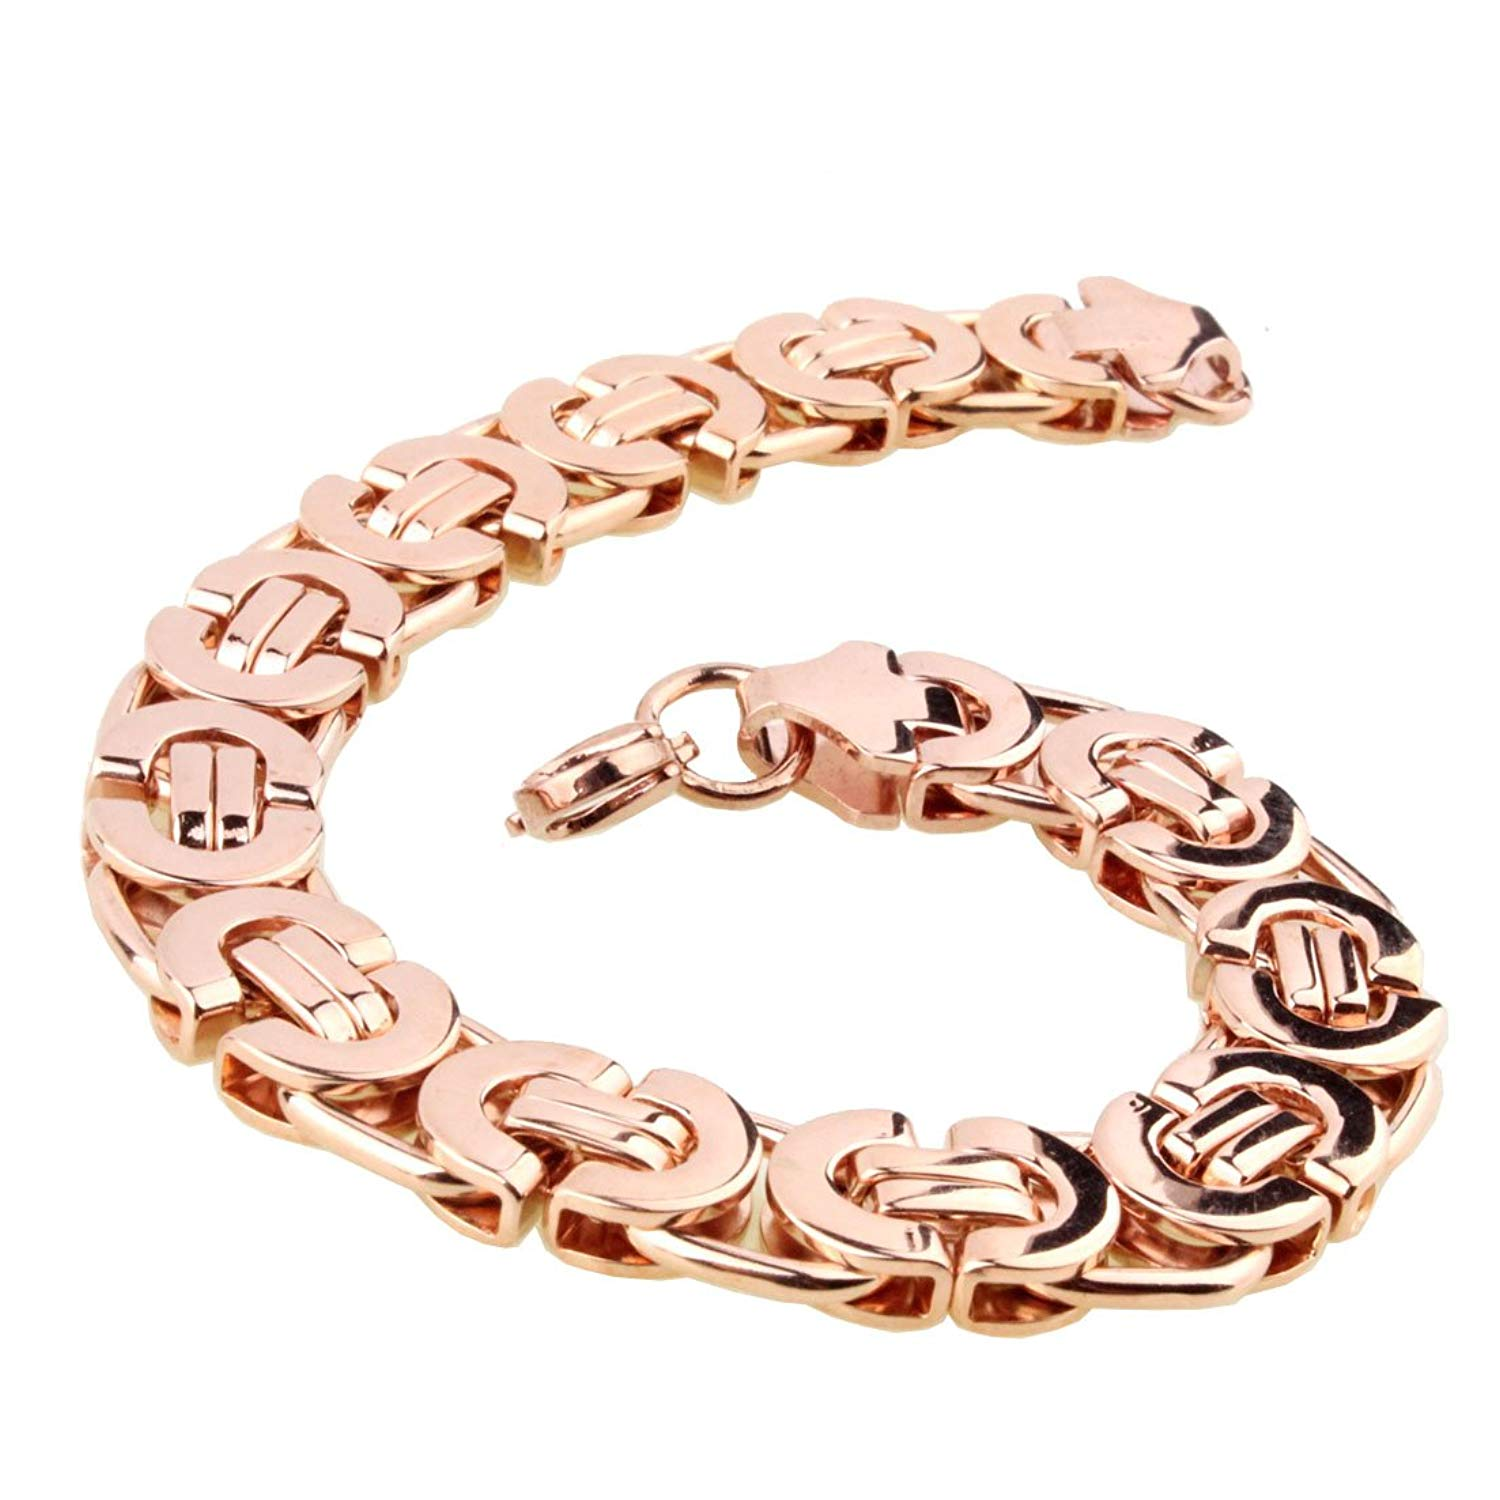 6/8/11mm Men's Chain Flat Byzantine 316L Stainless Steel Rose Gold Tone Necklace Bracelet 7-40inches